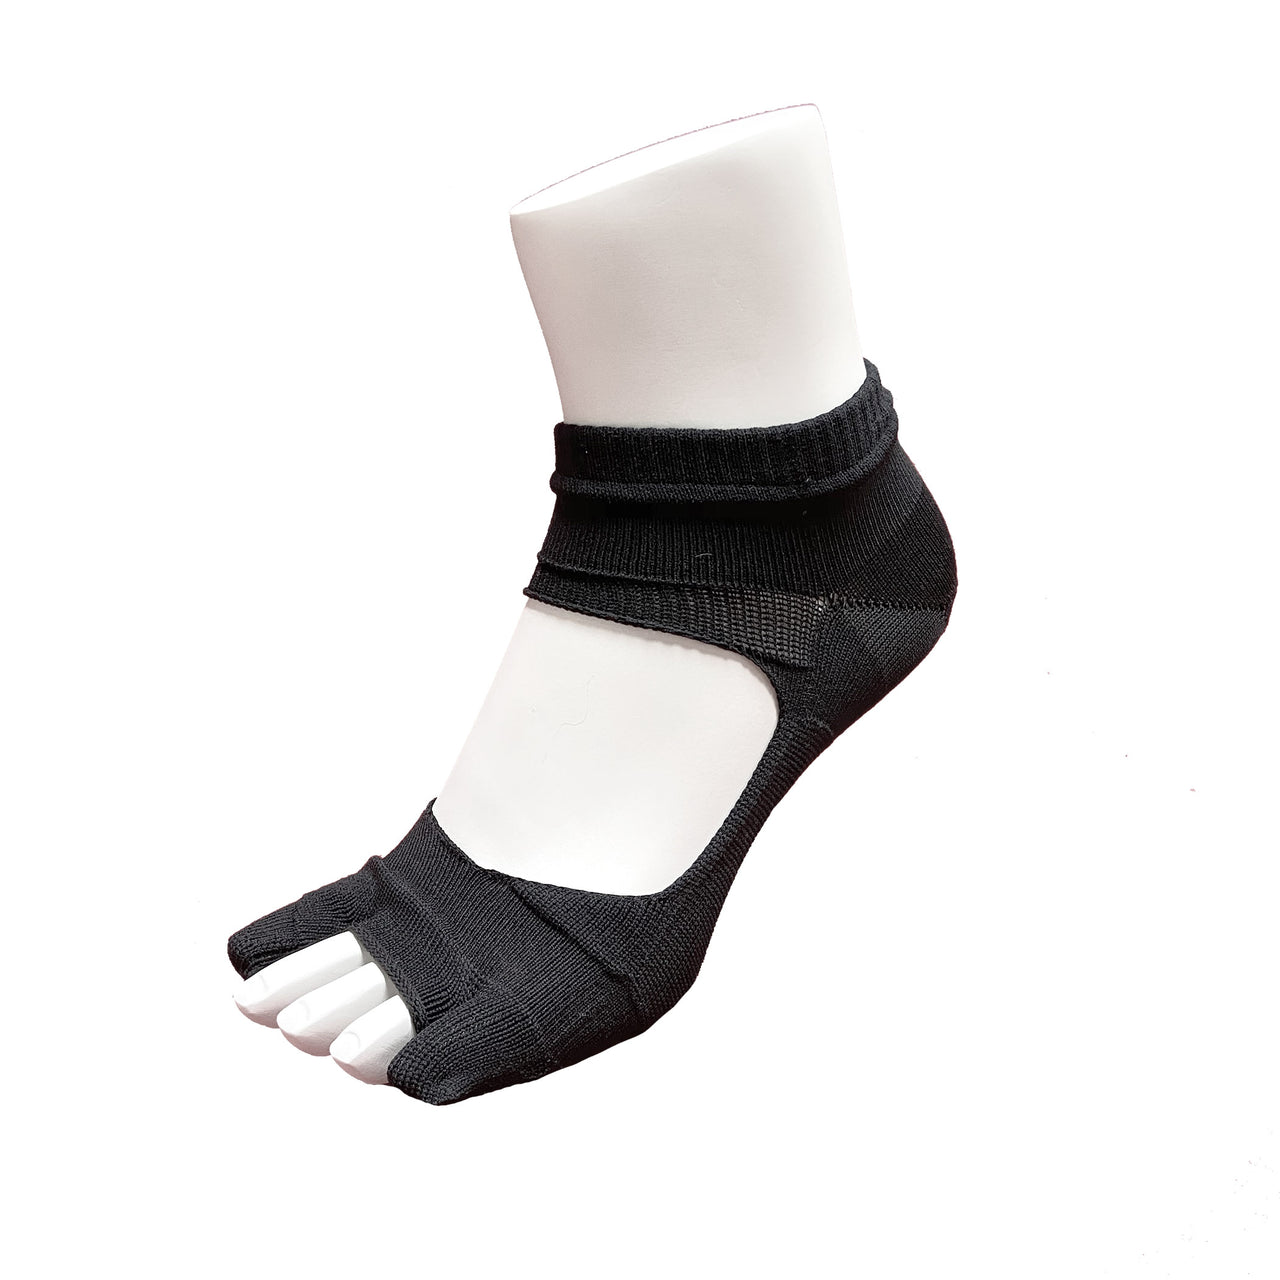 Bunion Support Foot Care Socks | Solid Black - CHERRYSTONE